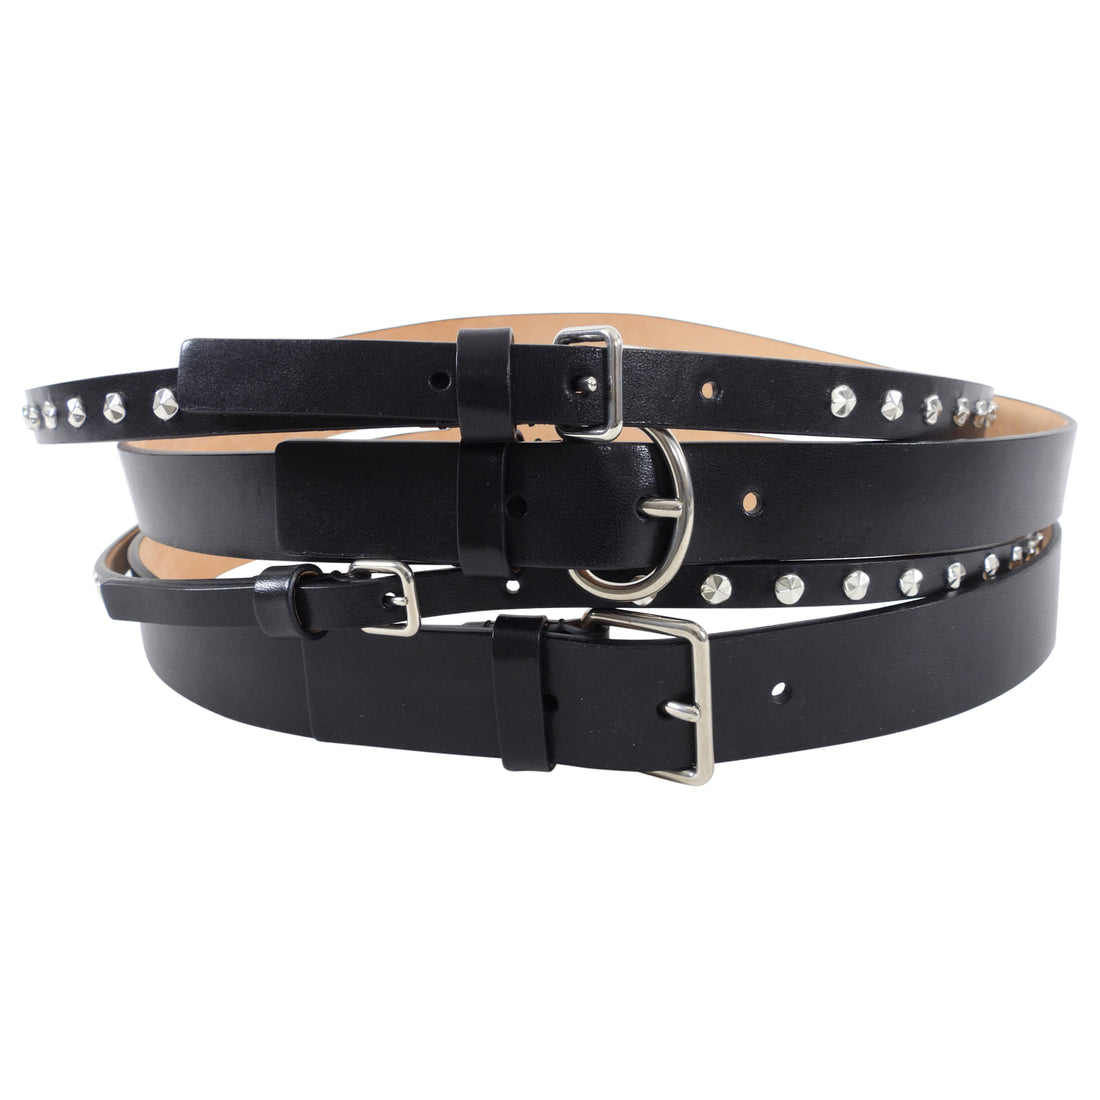 Alexander McQueen Black Leather Stud Wide Waist Cincher Belt - 85 / 34